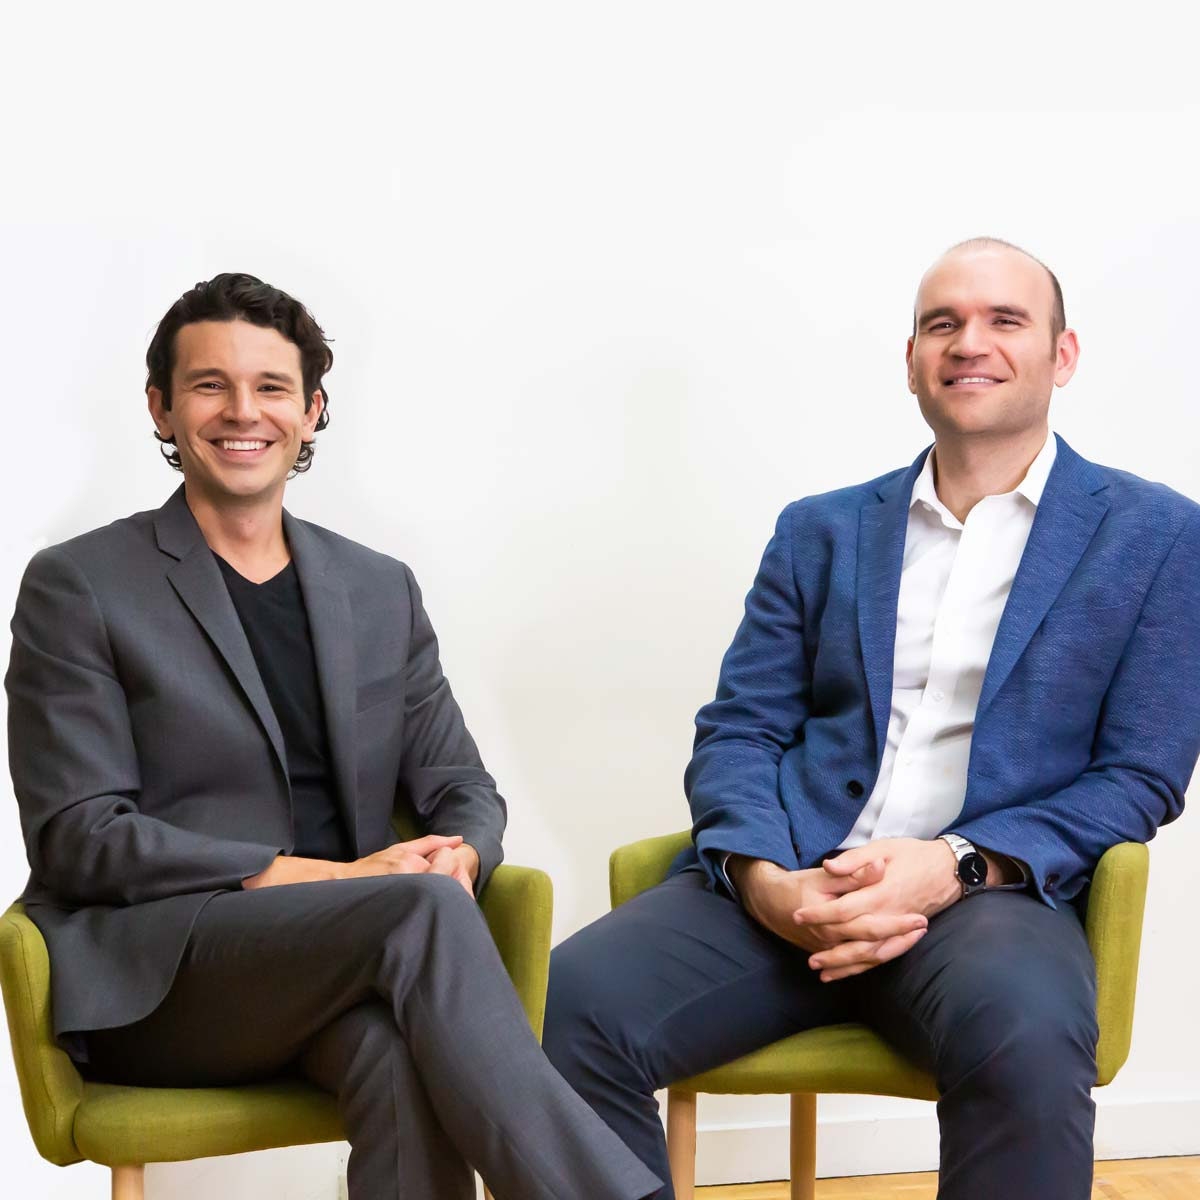 ArtSmart Founders – Michael Fabiano and John Viscardi